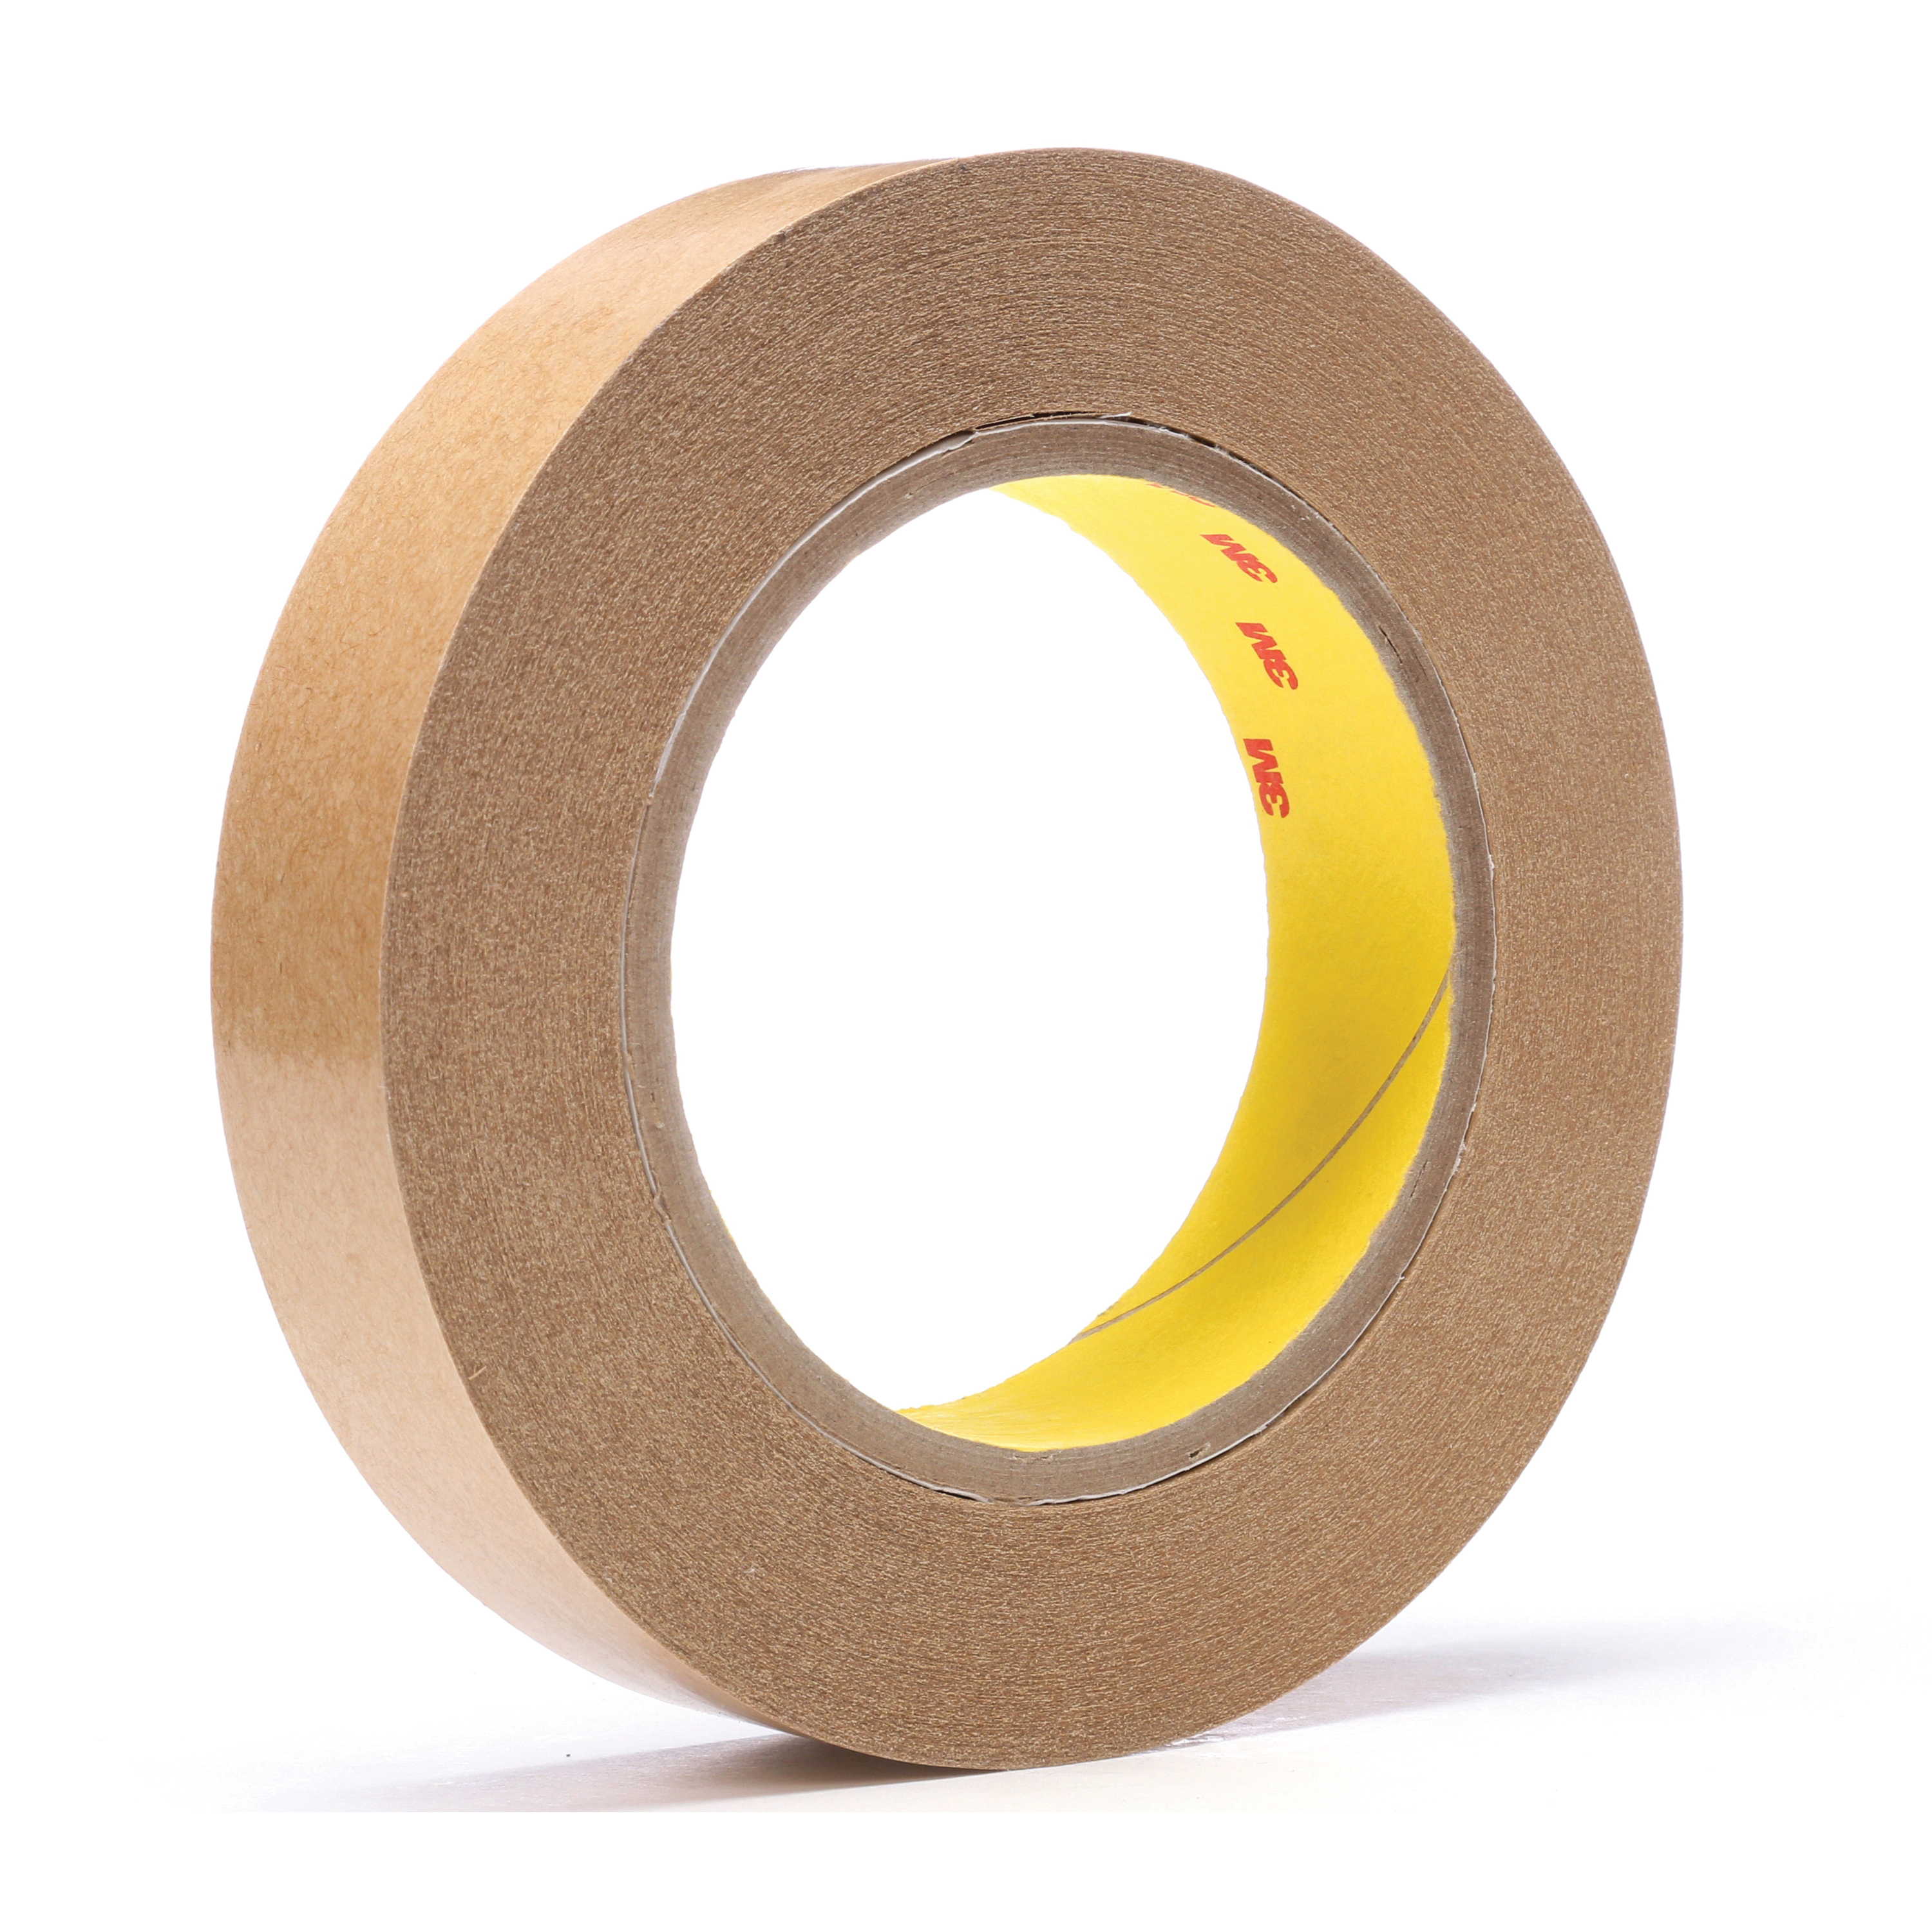 3M™ 021200-03337 465 Fibered General Purpose Adhesive Transfer Tape, 1 in W x 60 yd Roll L, 2 mil THK, Clear